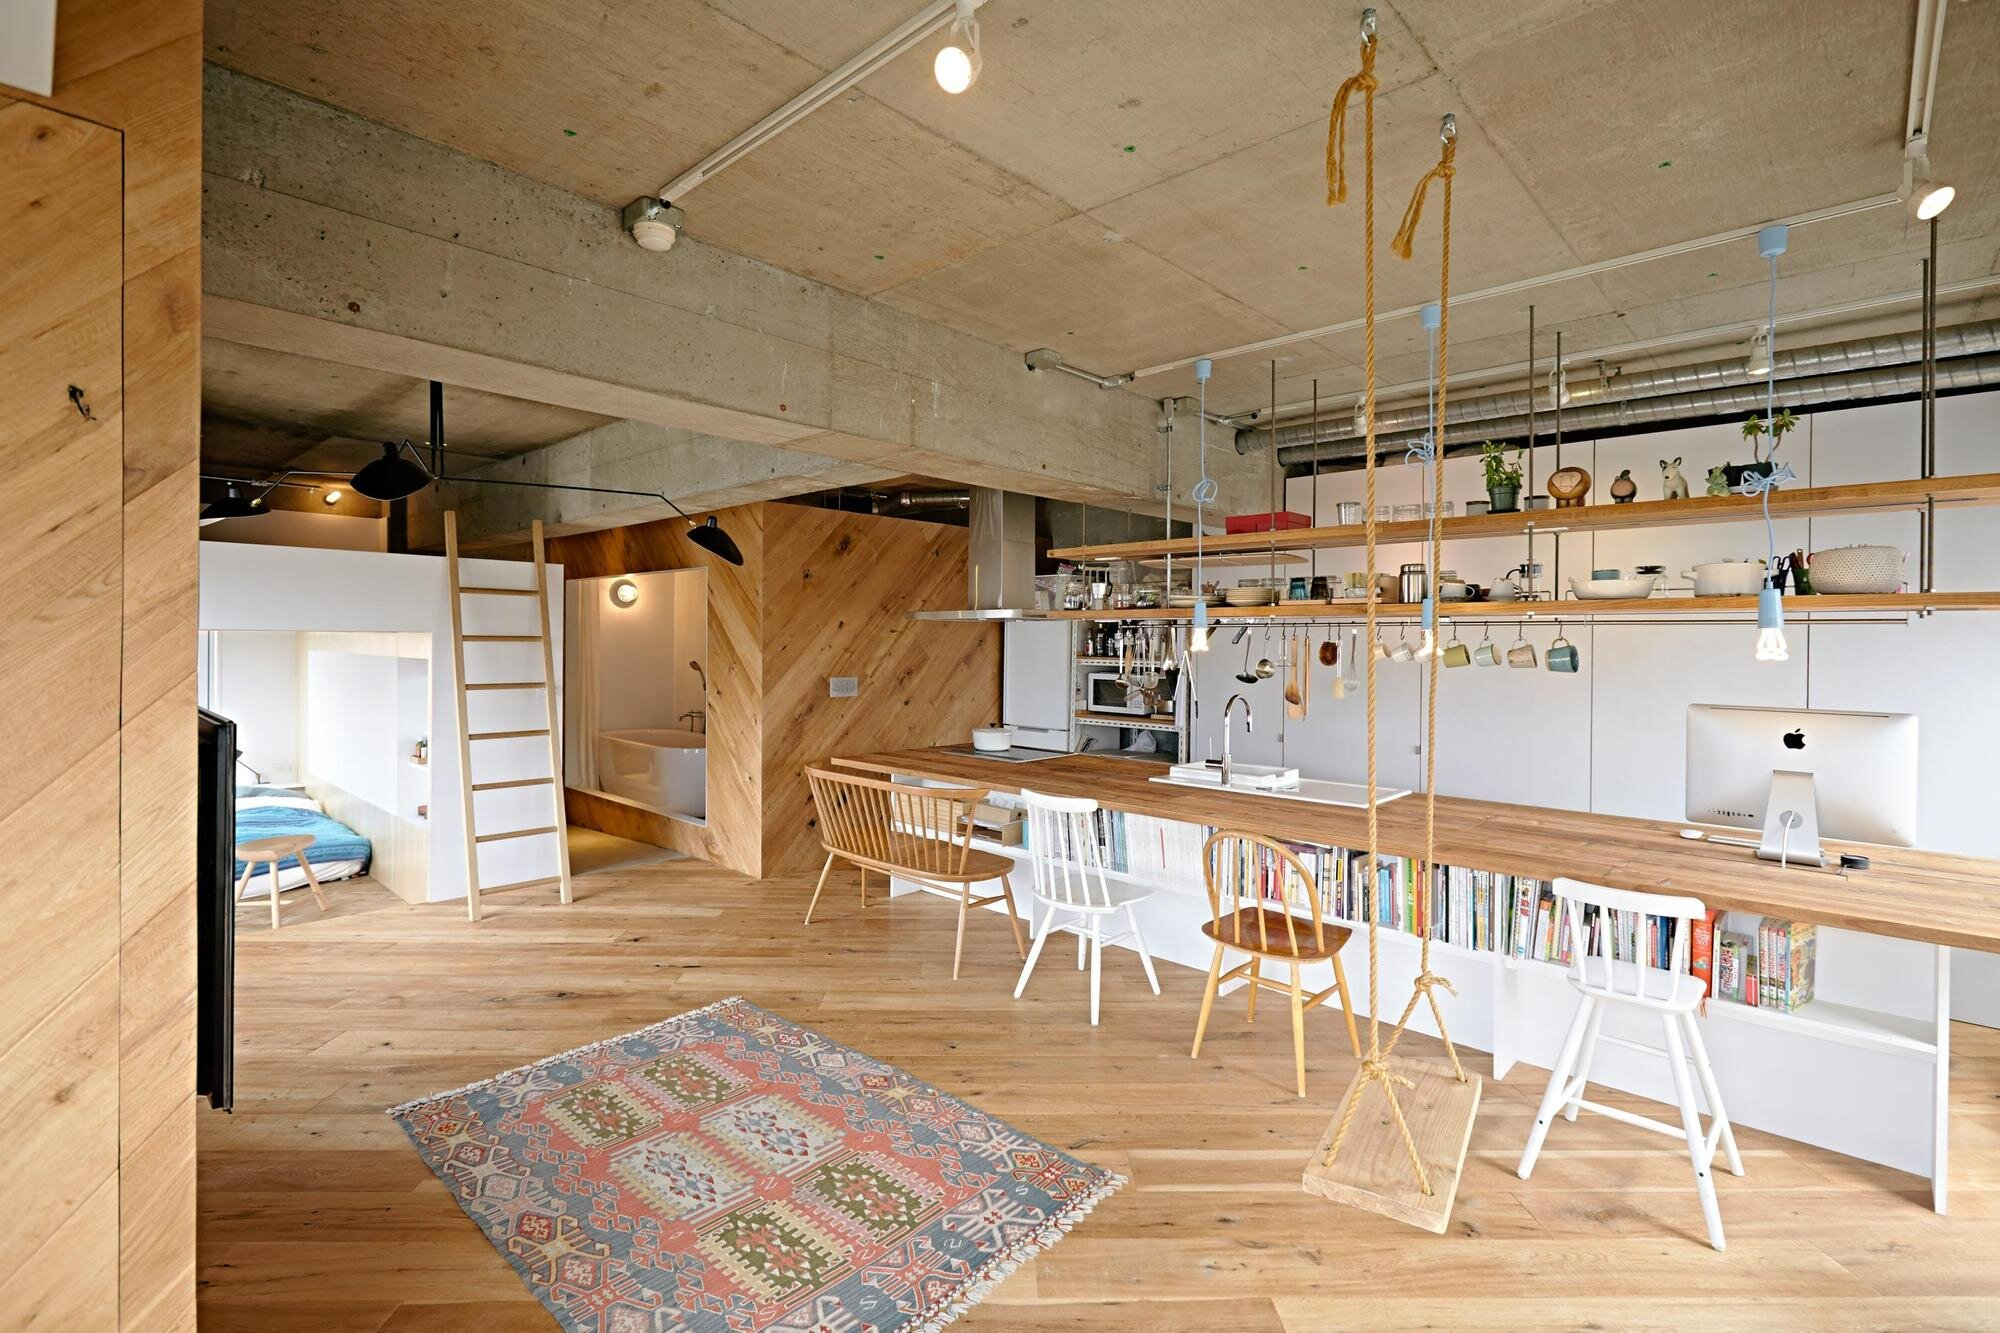 Tenhachi House - .8 Tenhachi Architect & Interior Design - Tokyo - Kitchen 2 - Humble Homes